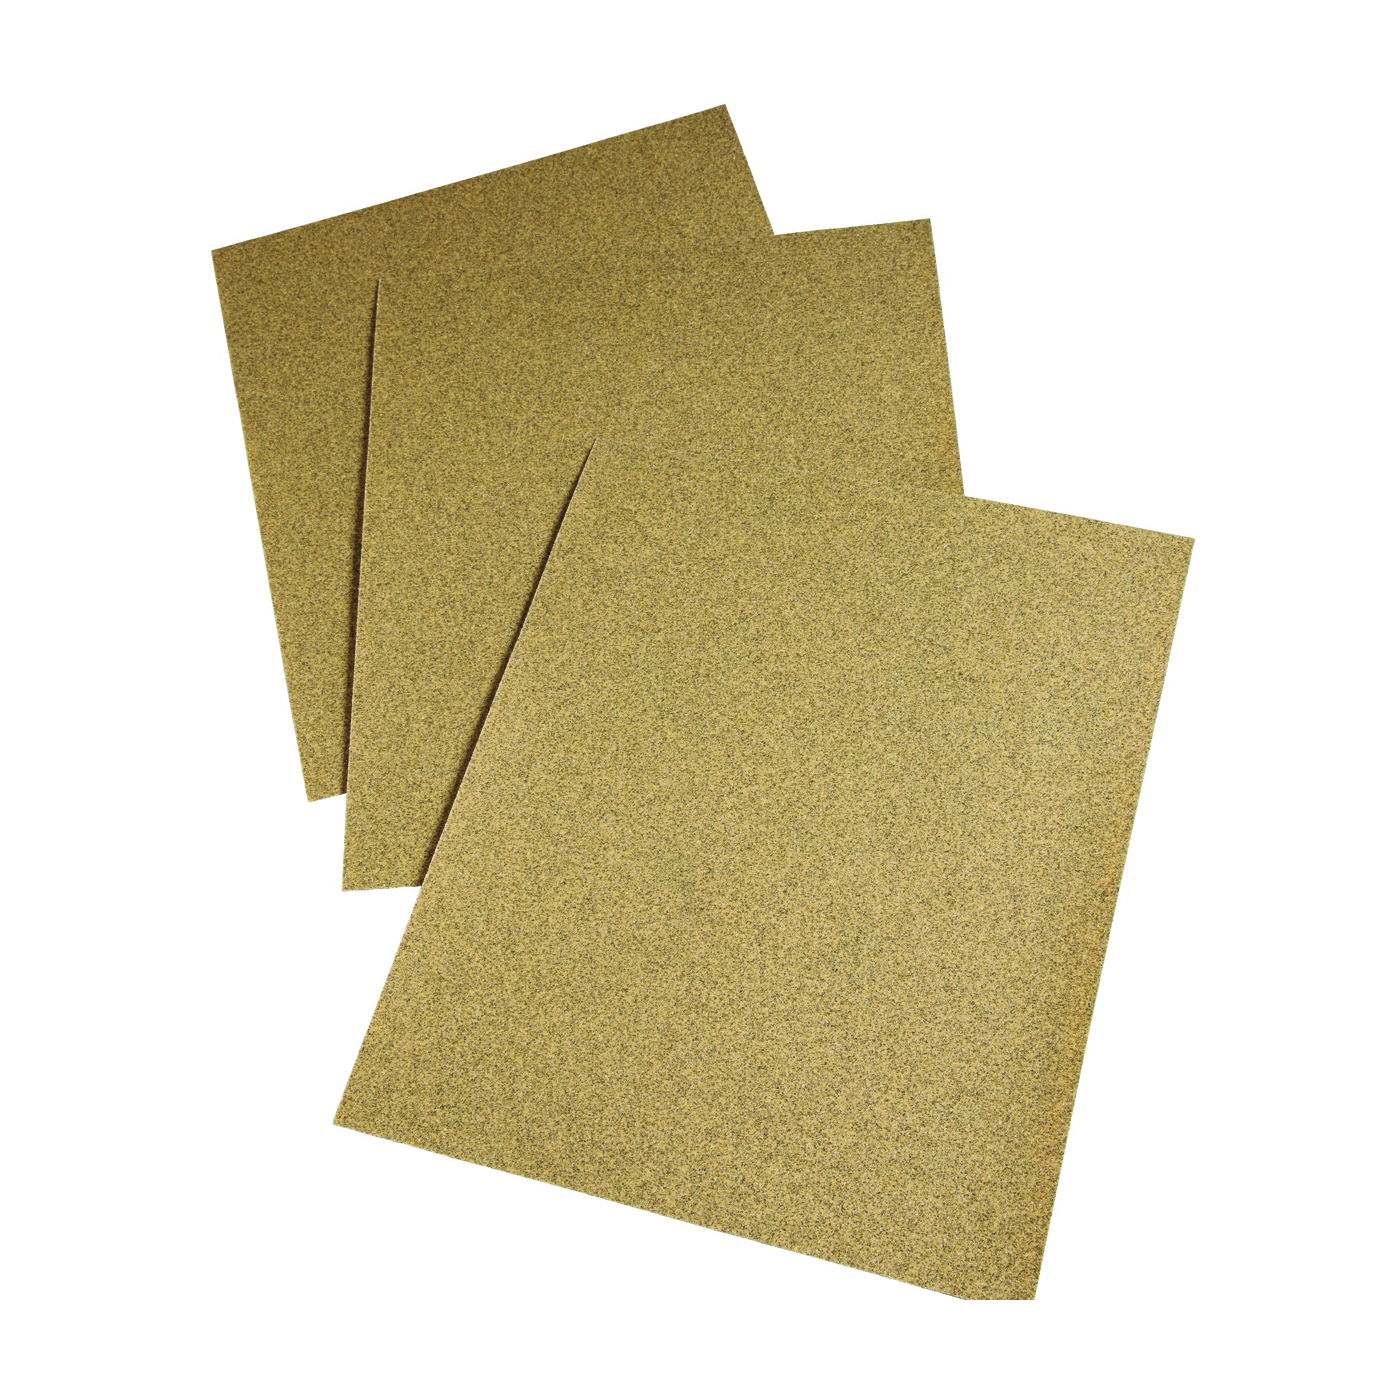 Picture of 3M 02115 Sanding Sheet, 11 in L, 9 in W, Medium, 80 Grit, Aluminum Oxide Abrasive, Paper Backing